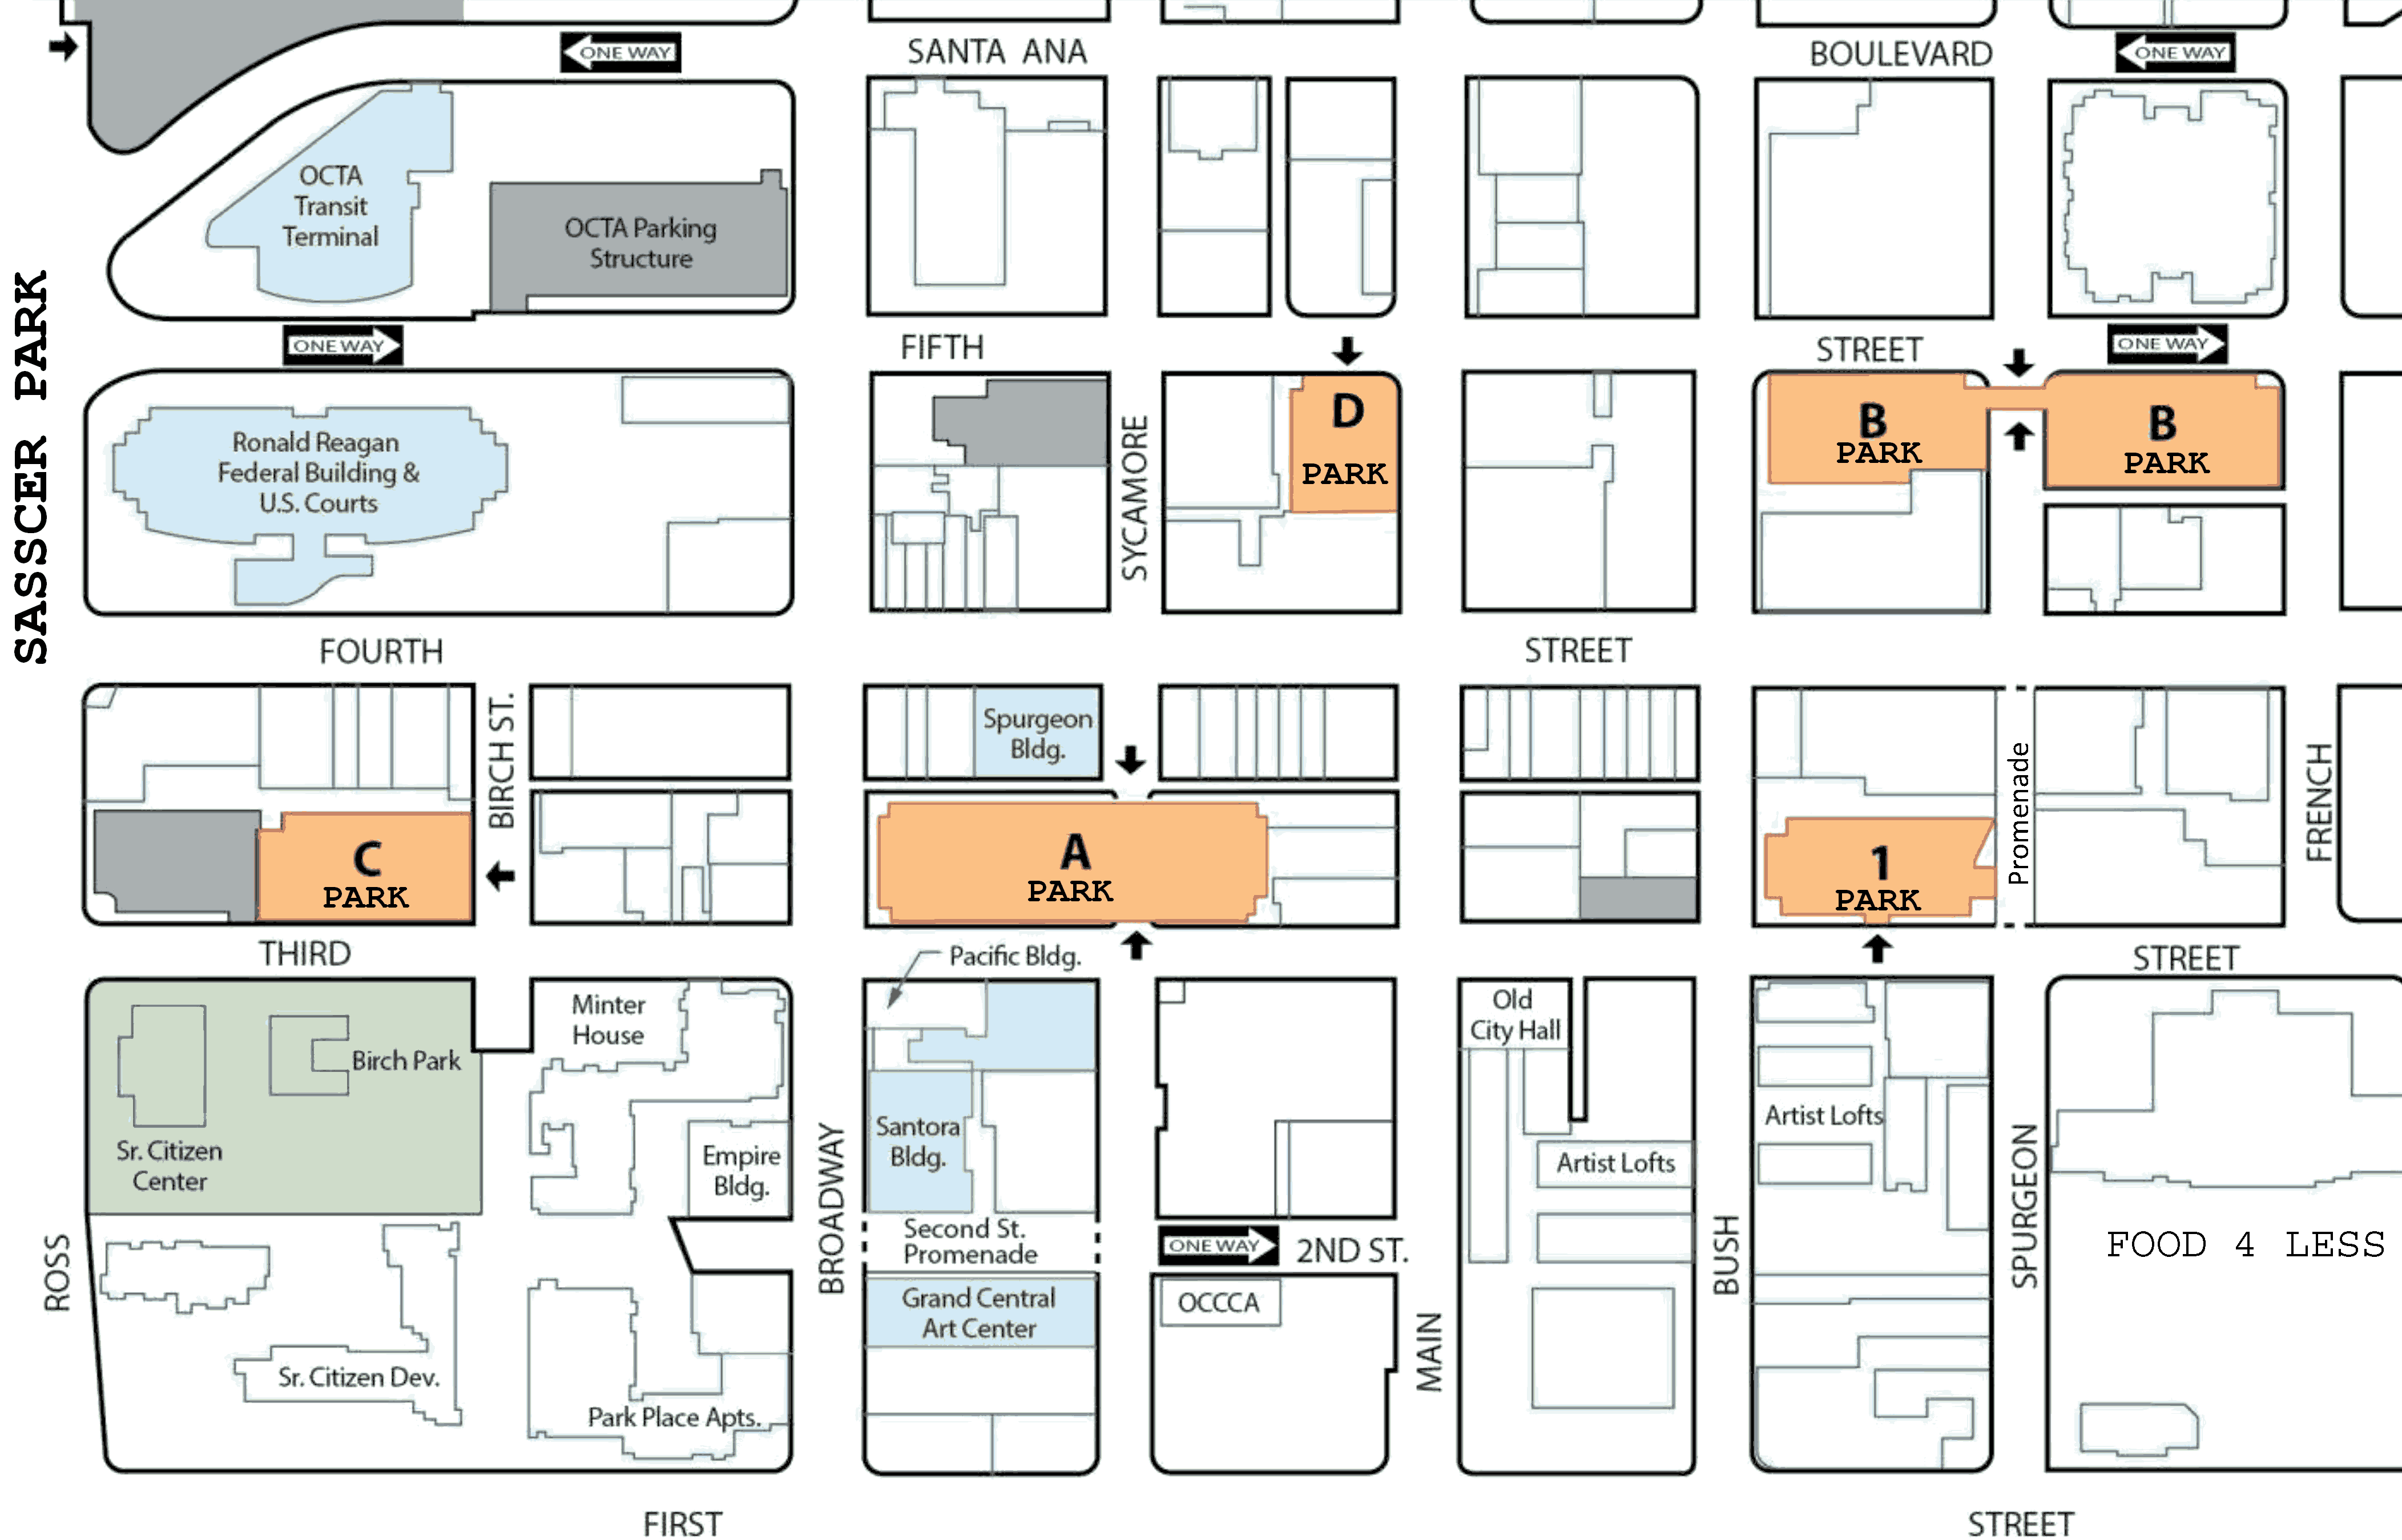 Parking for Scer Park, Santa Ana, CA - INDIVISIBLE CA39 on map of downtown fremont, map of downtown california, map of downtown summerlin, map of sw bakersfield ca, map of downtown oakland ca, map of downtown el segundo, map of downtown oceanside, map of downtown del mar, map of downtown las vegas strip, map of downtown cabo san lucas, map of downtown san luis obispo, map of downtown cambria ca, map of downtown seaside, map of eastside, map of santa ana ca, map of santa ana winds, map of santa ana college, map of downtown san clemente, map of downtown florida, map of downtown san juan capistrano,